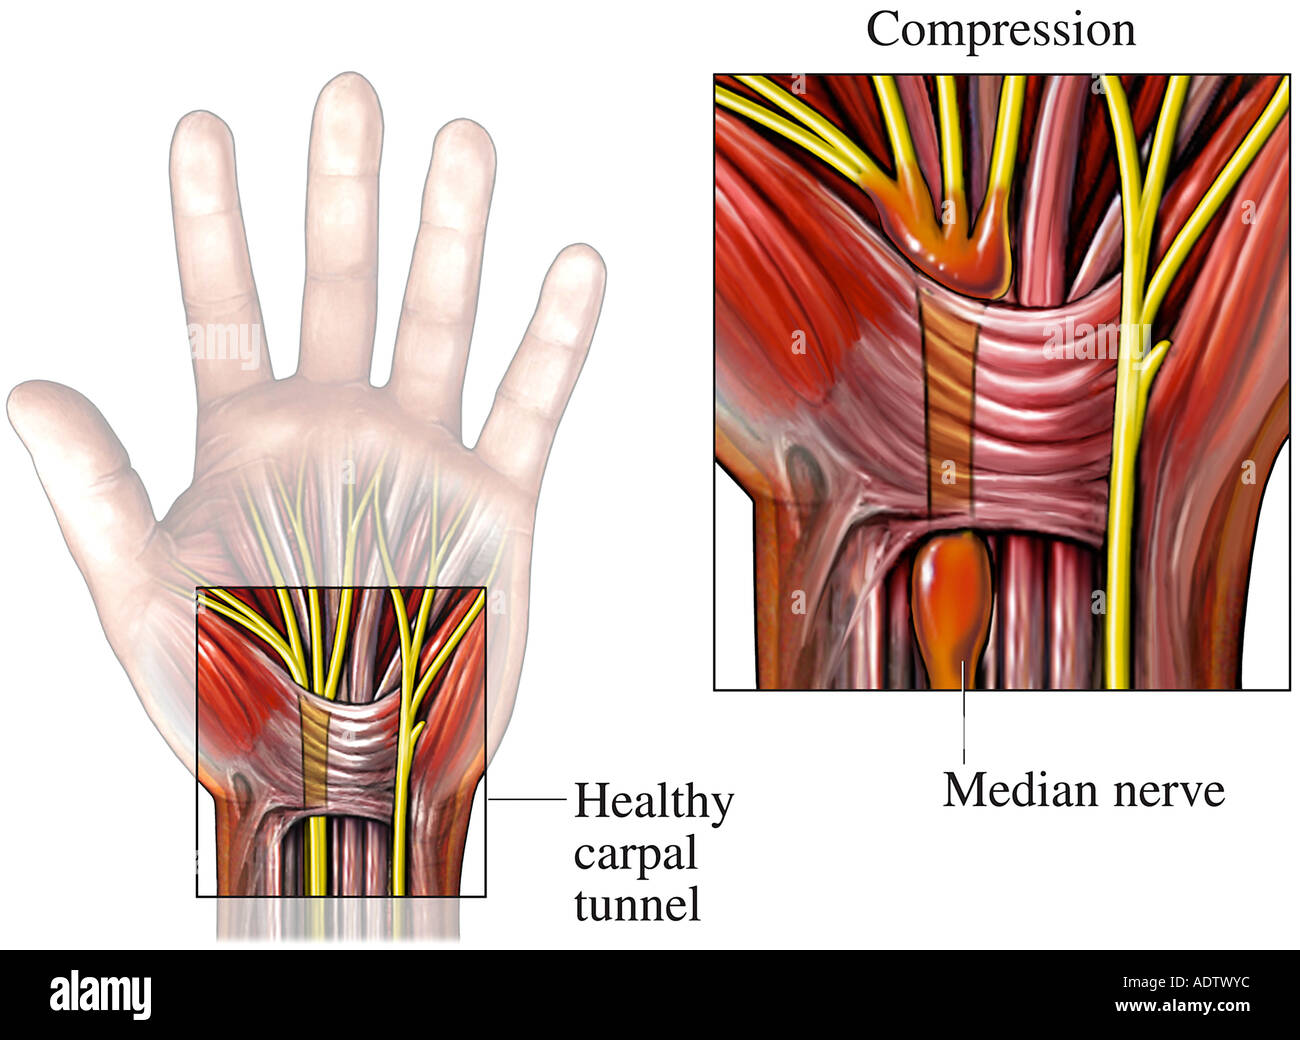 Carpal Tunnel Syndrome Stock Photo: 7710587 - Alamy